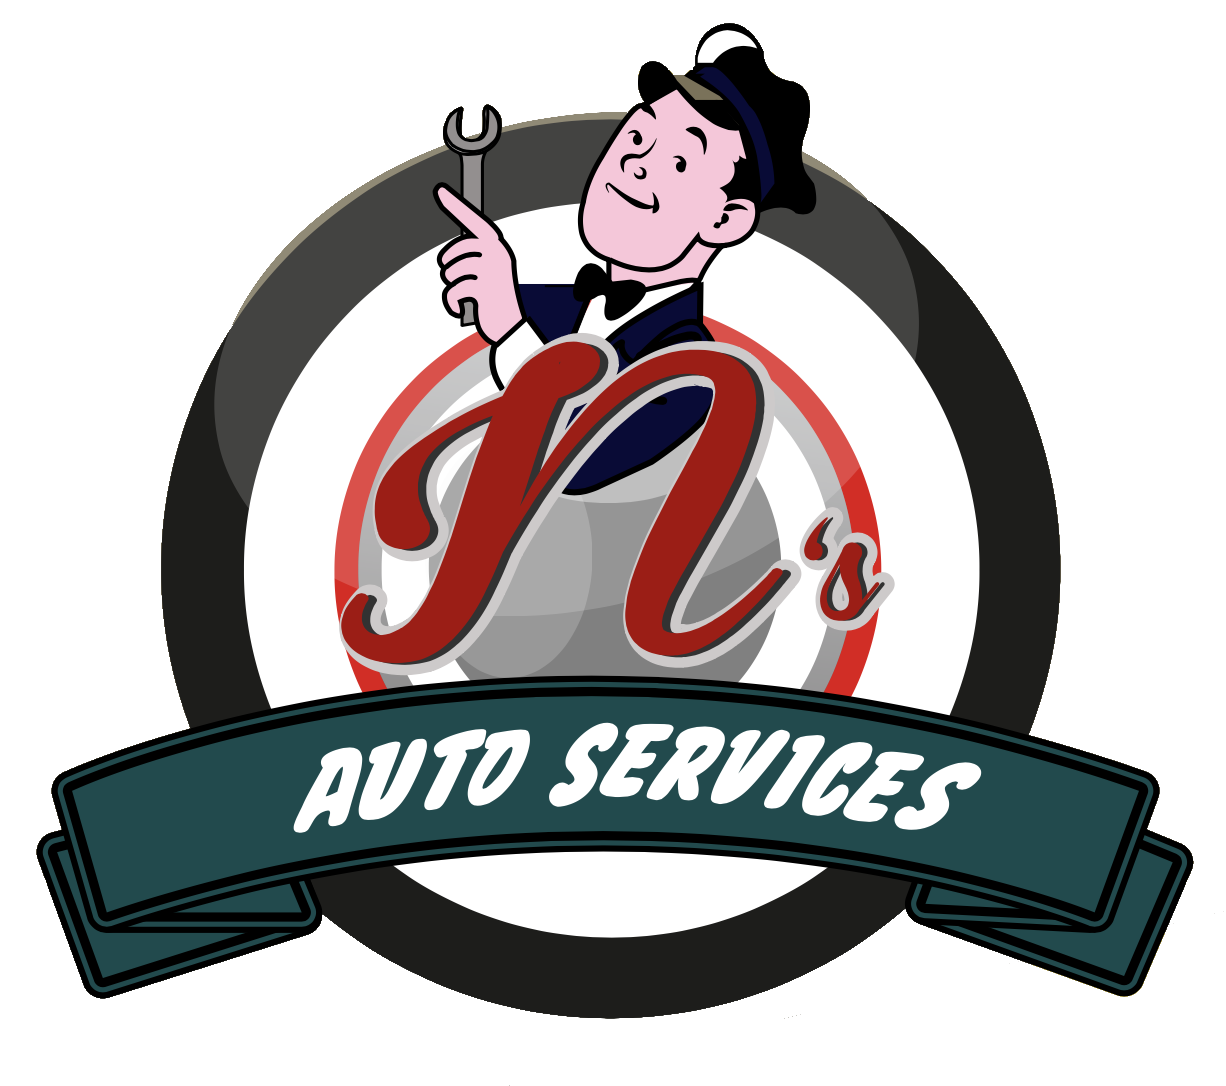 N's Auto Services rebuild from the ground up!